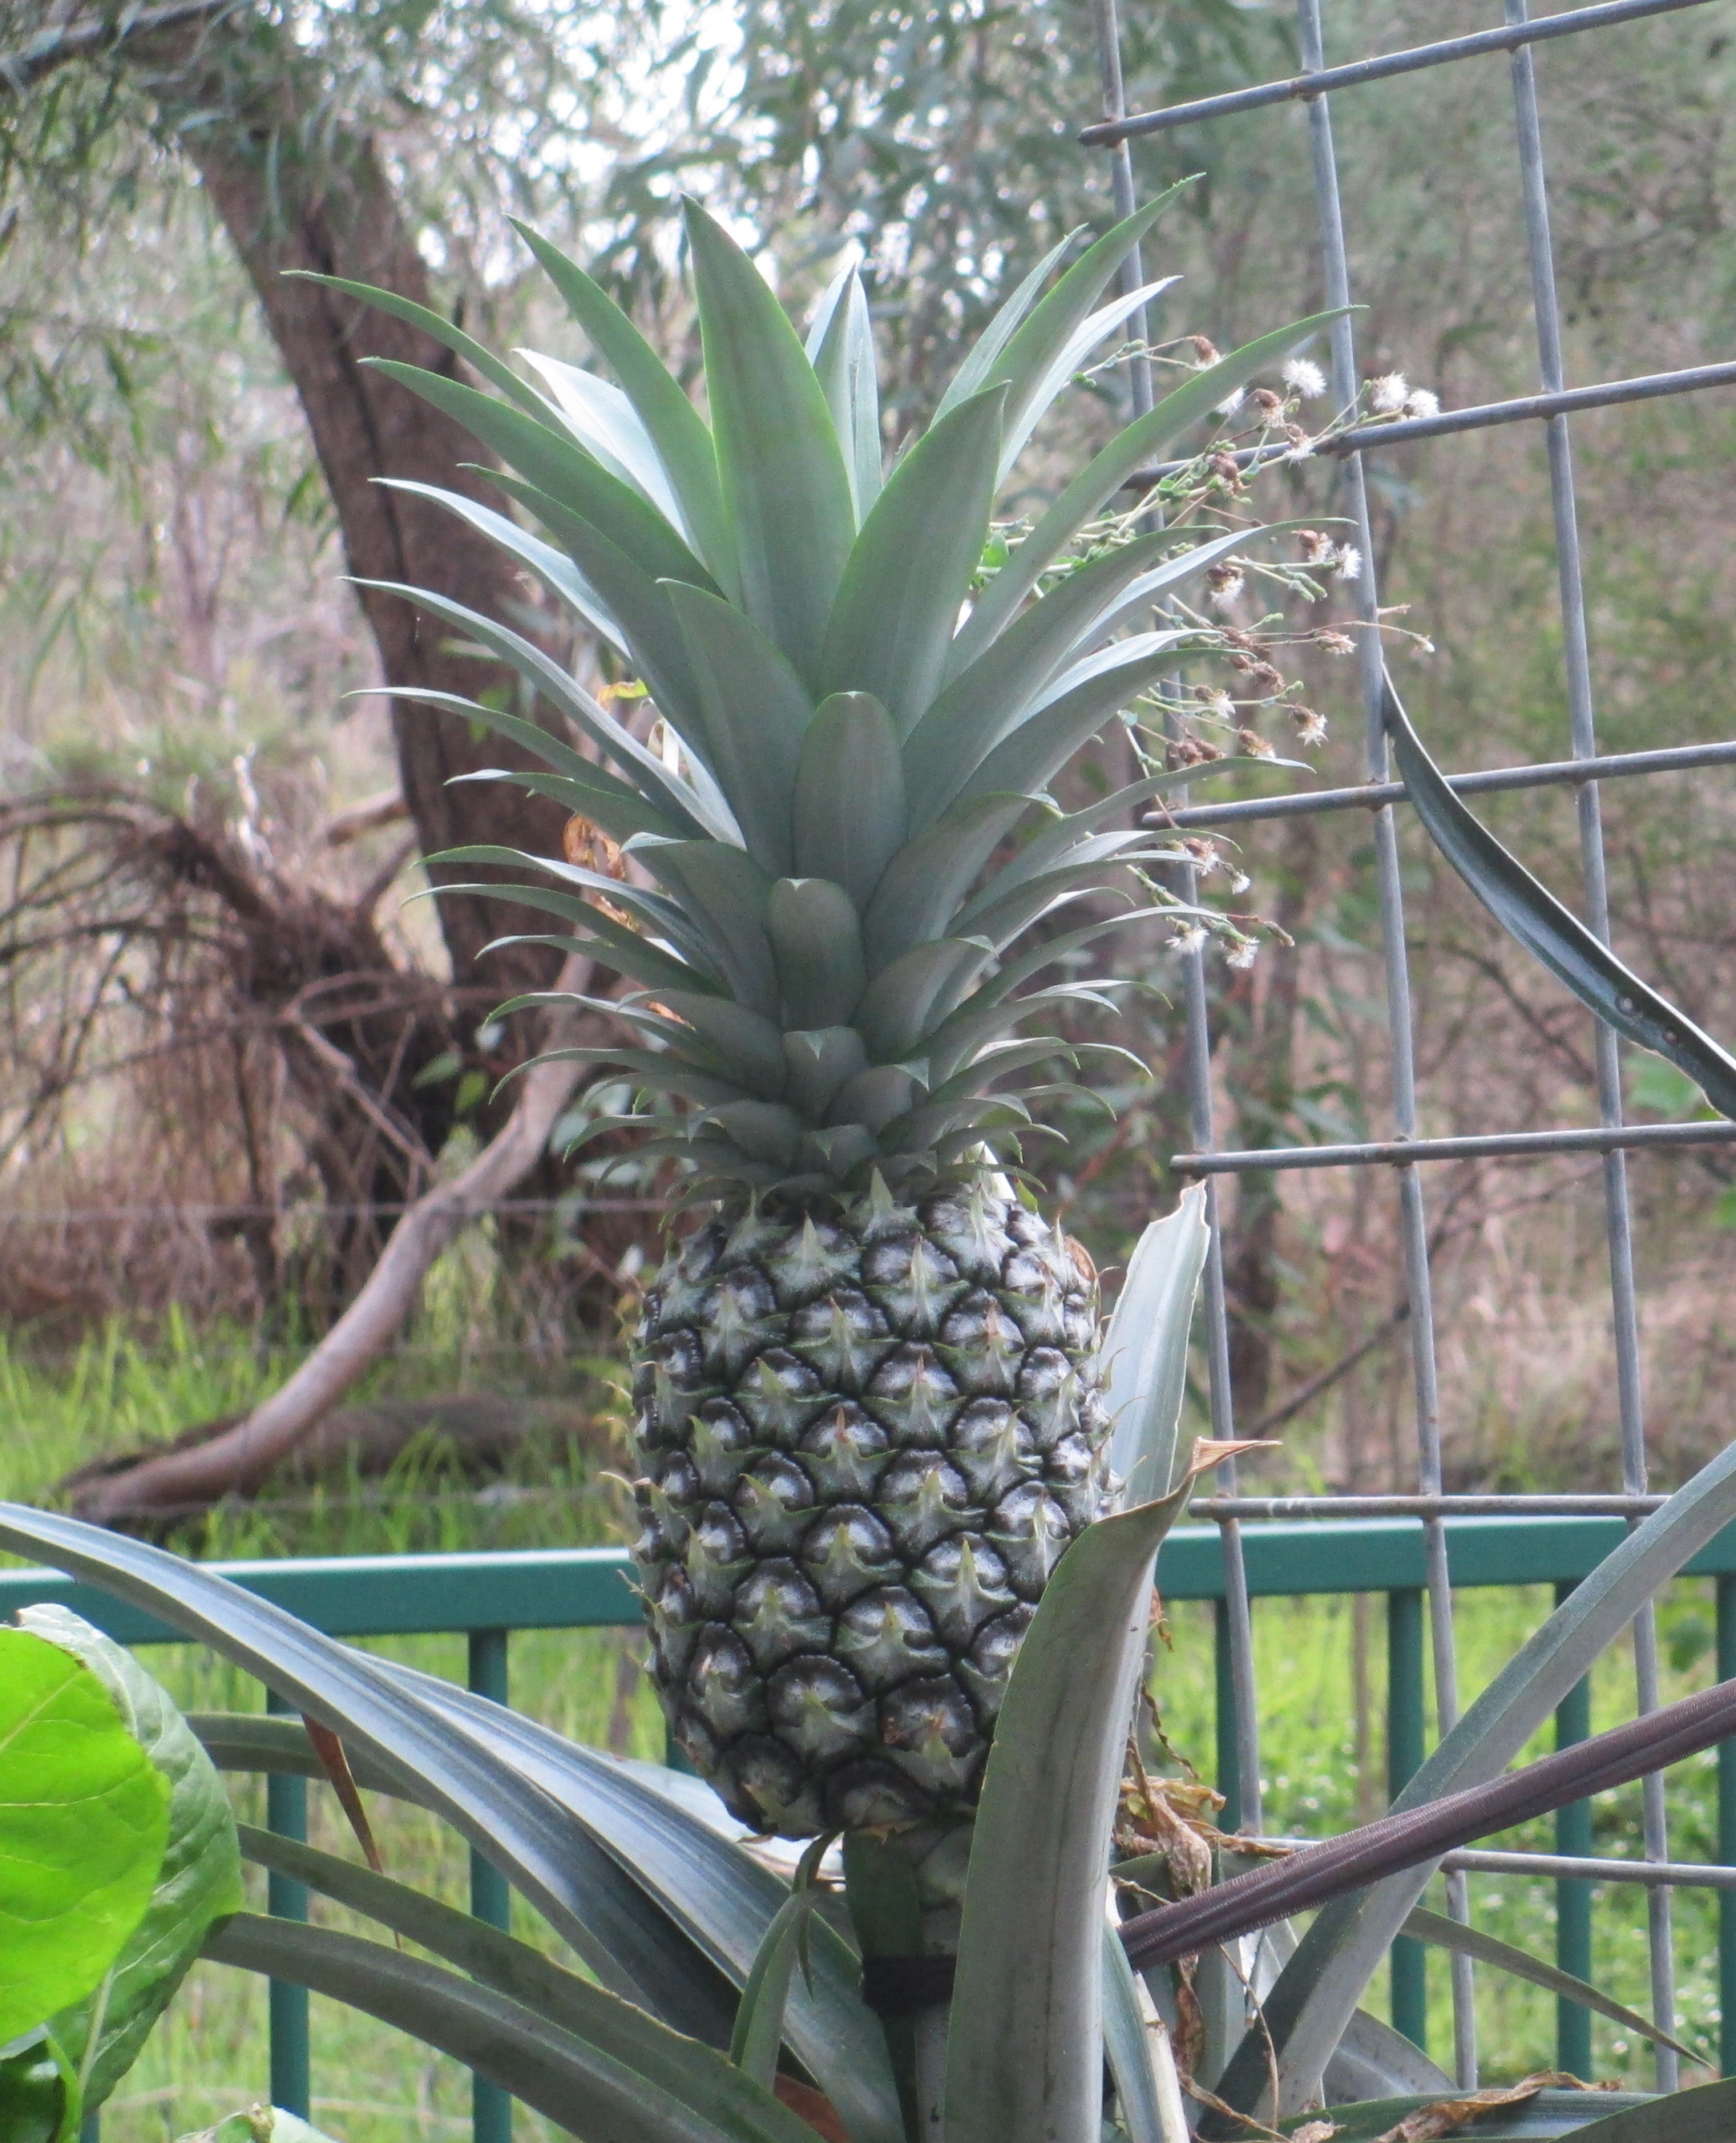 Aquaponics pineapple